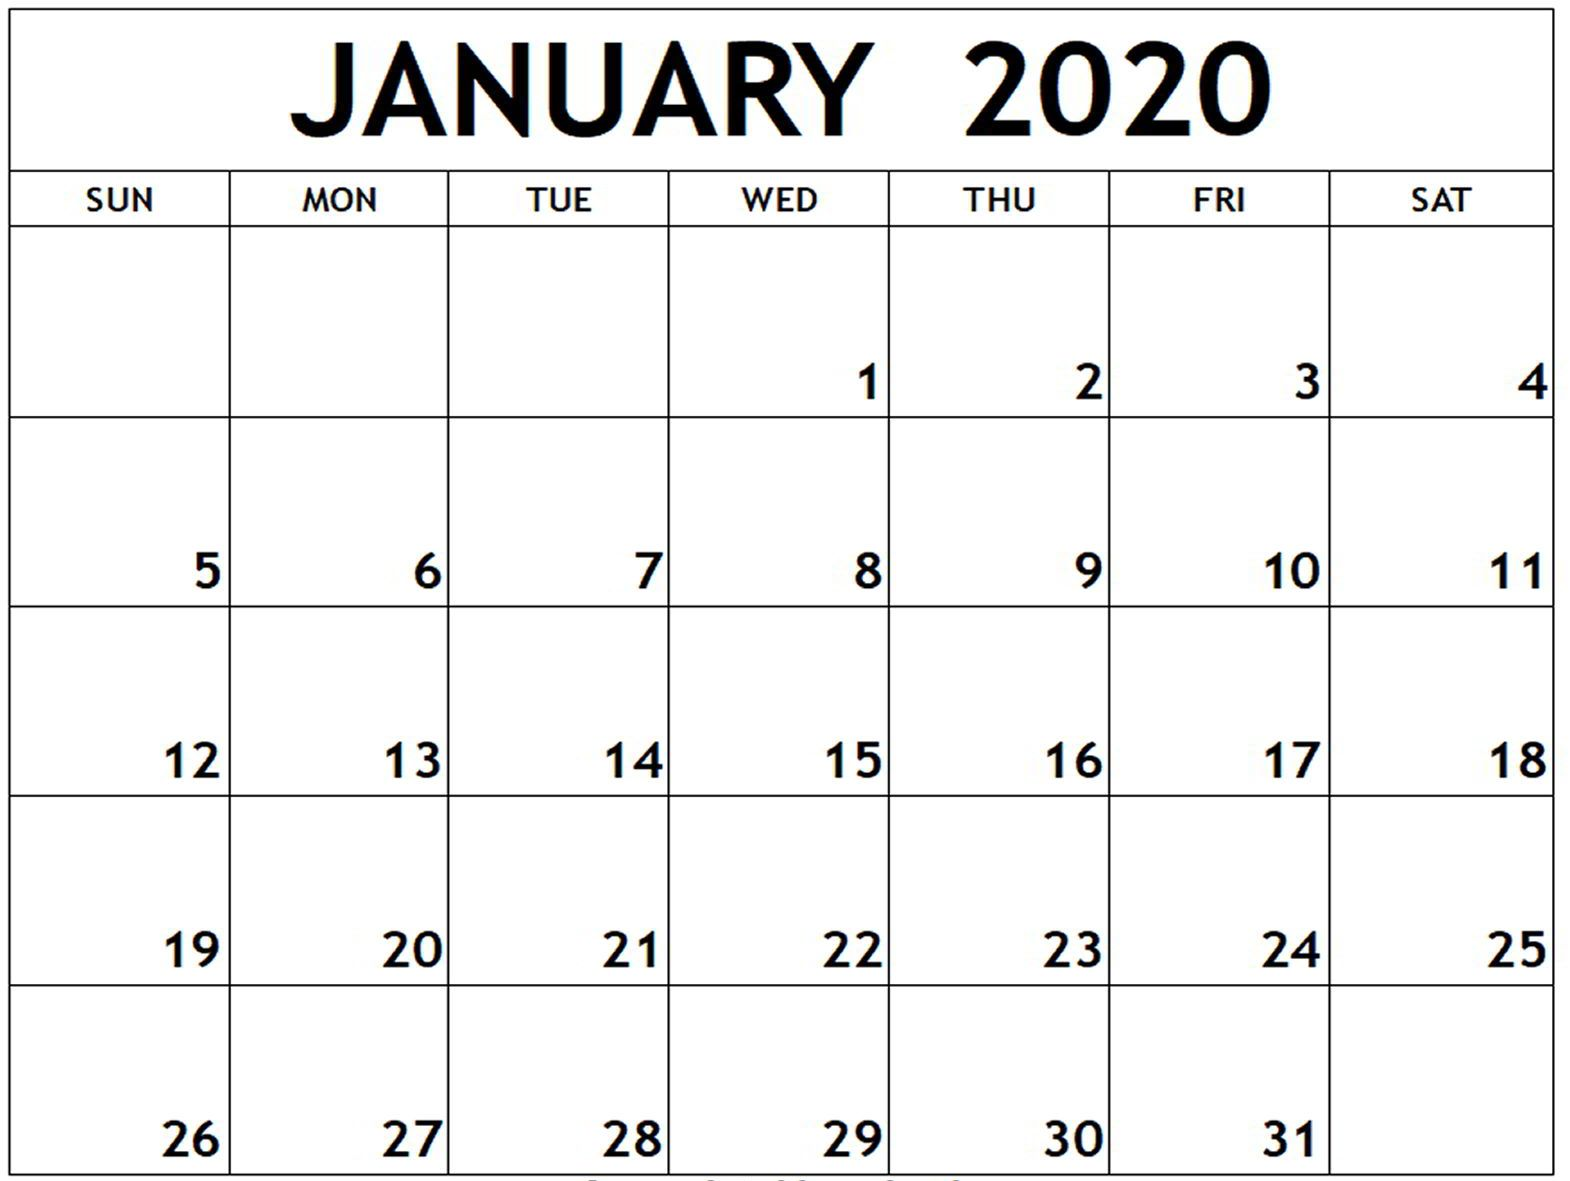 January Calendar 2020 Editable Template